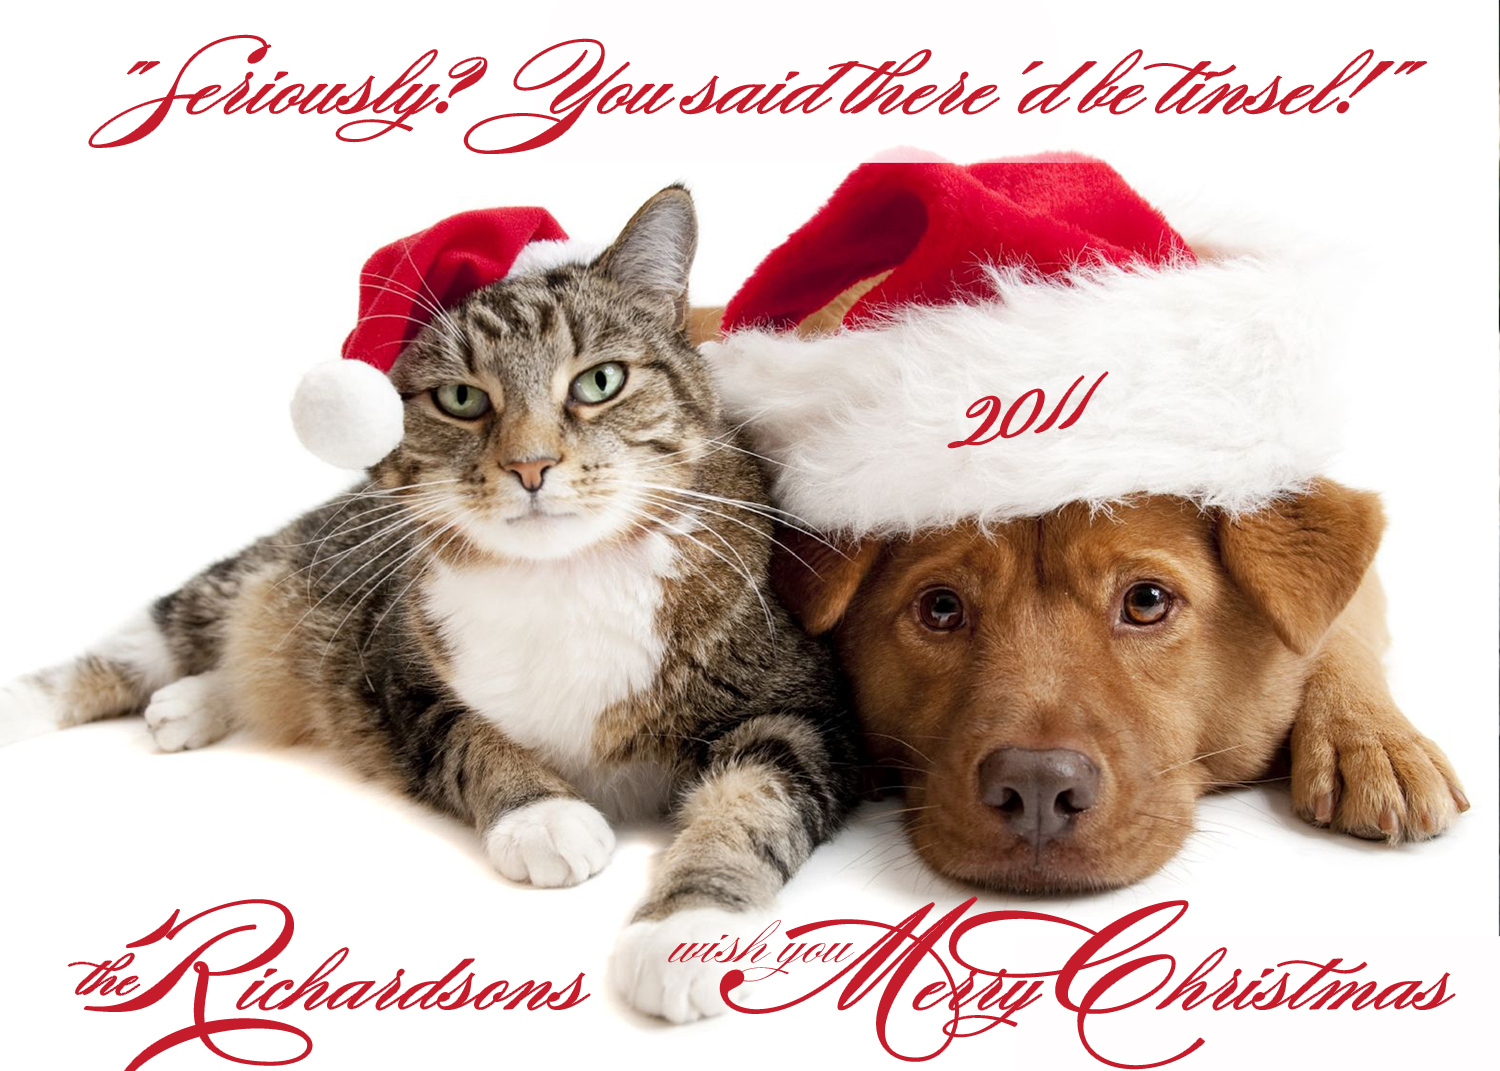 Photo Christmas Card Pets Dog Cat Pet Photo Card - 7\